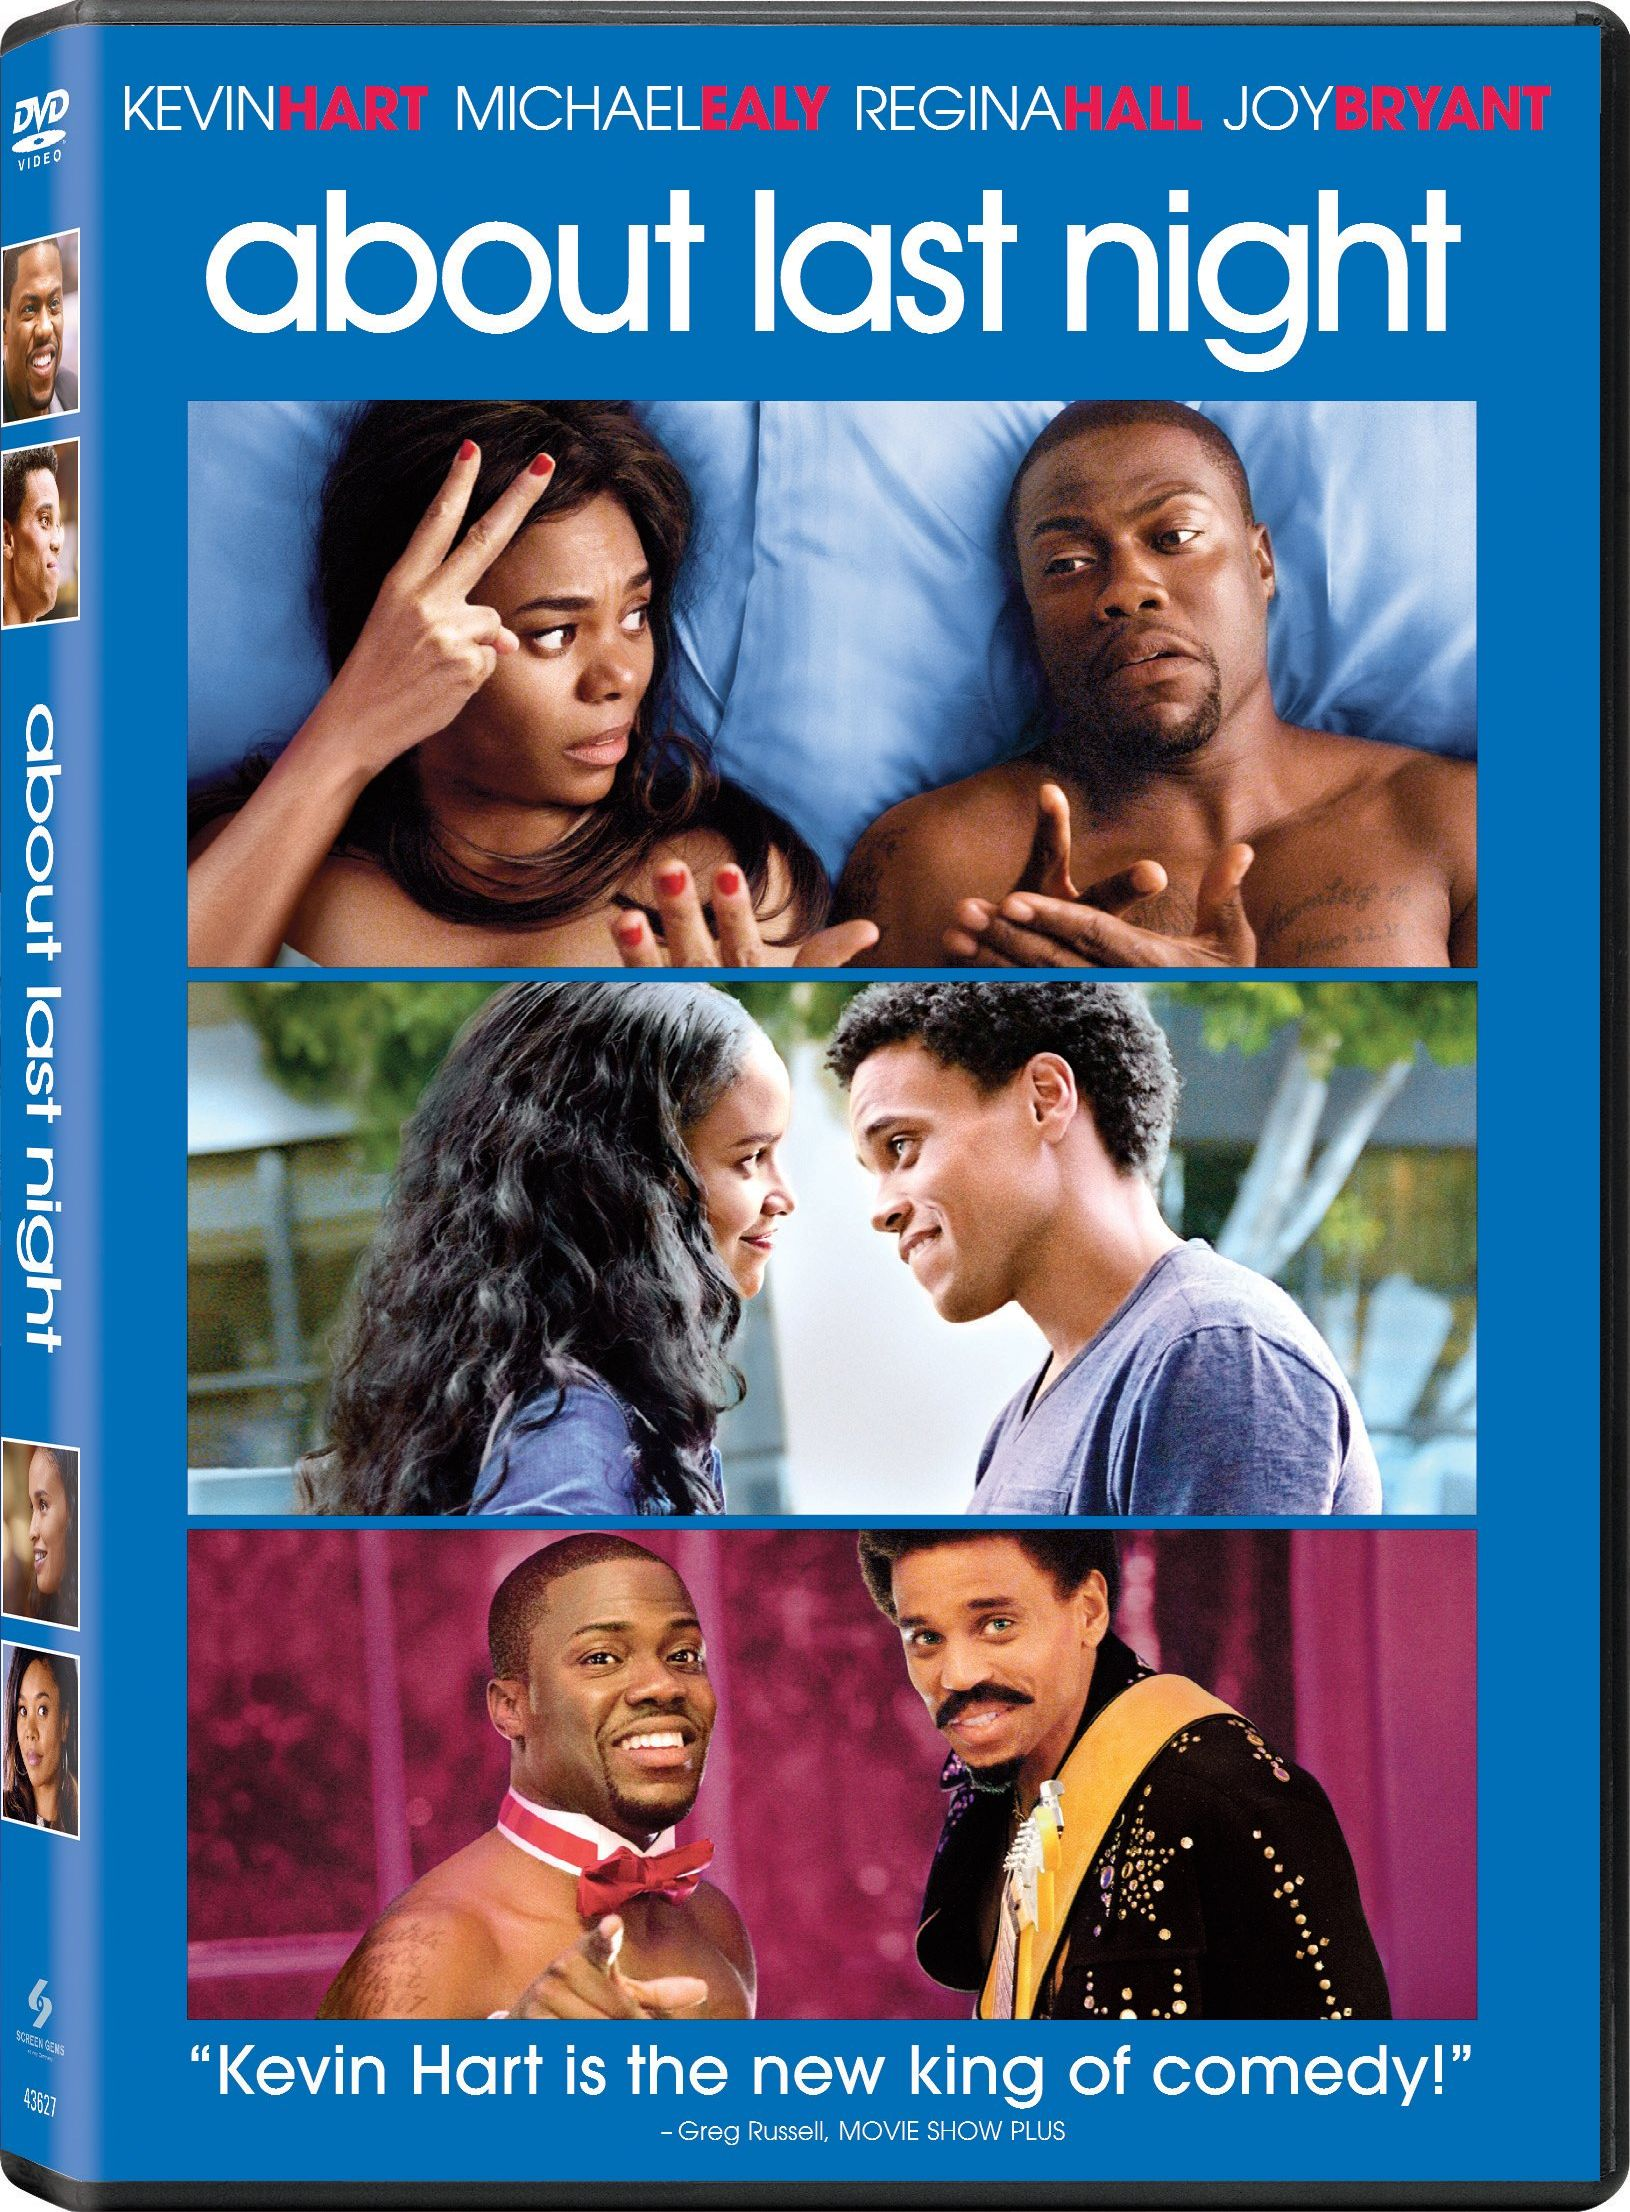 Entertainment Dvd Cover About Last Night Dvd Cover